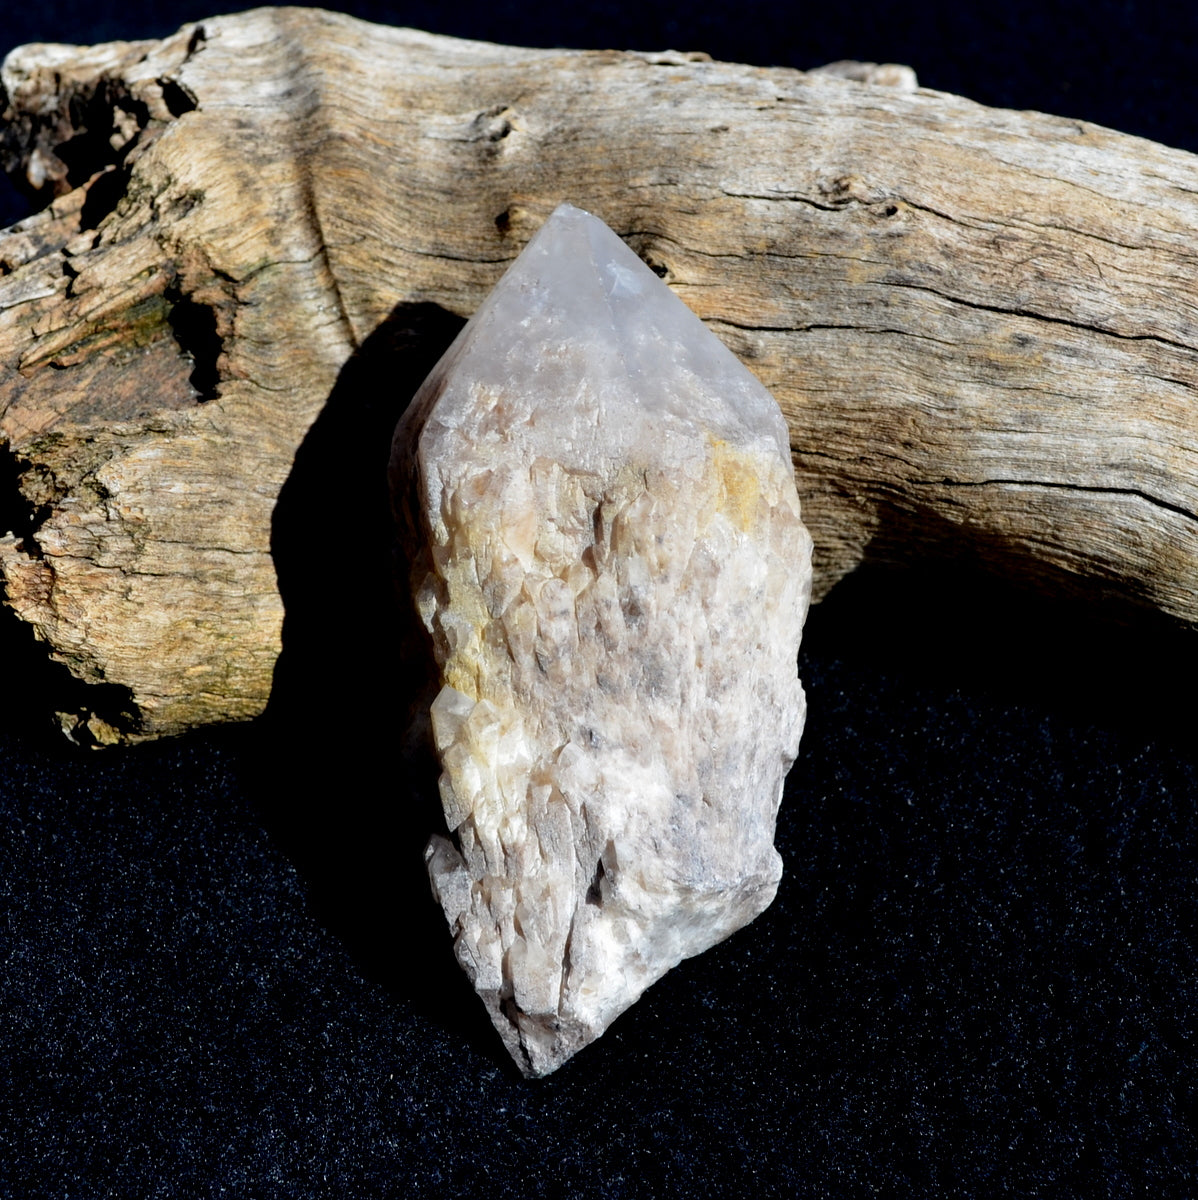 Pineapple Candle Quartz - Akashic Records Wisdom Healing - Shop Now at Illiom Crystals - Now with Afterpay